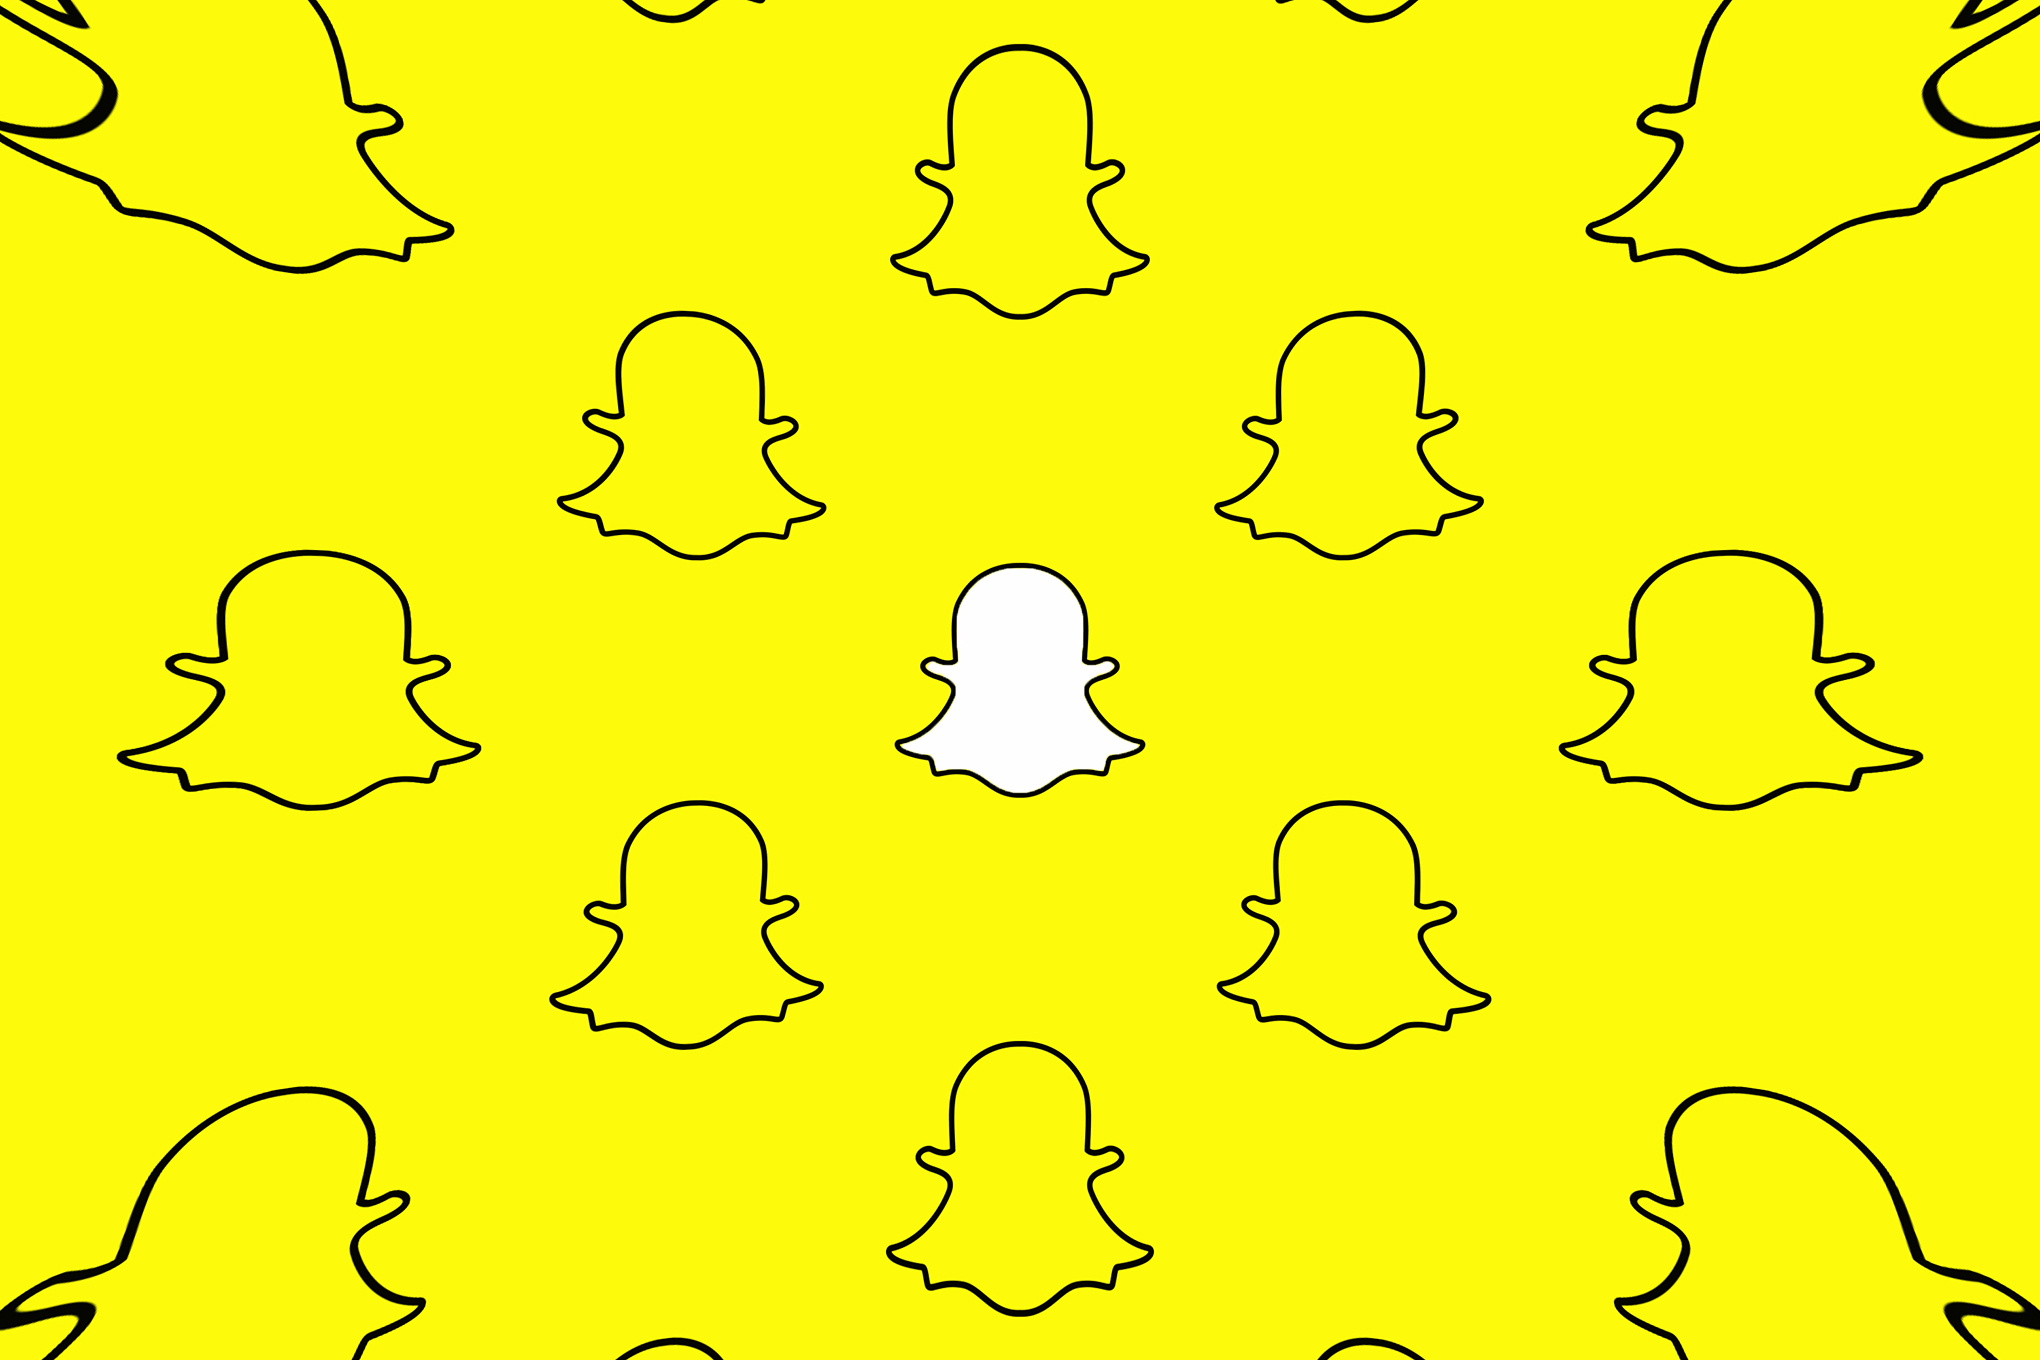 The Snapchat white ghost logo on a bright yellow background.